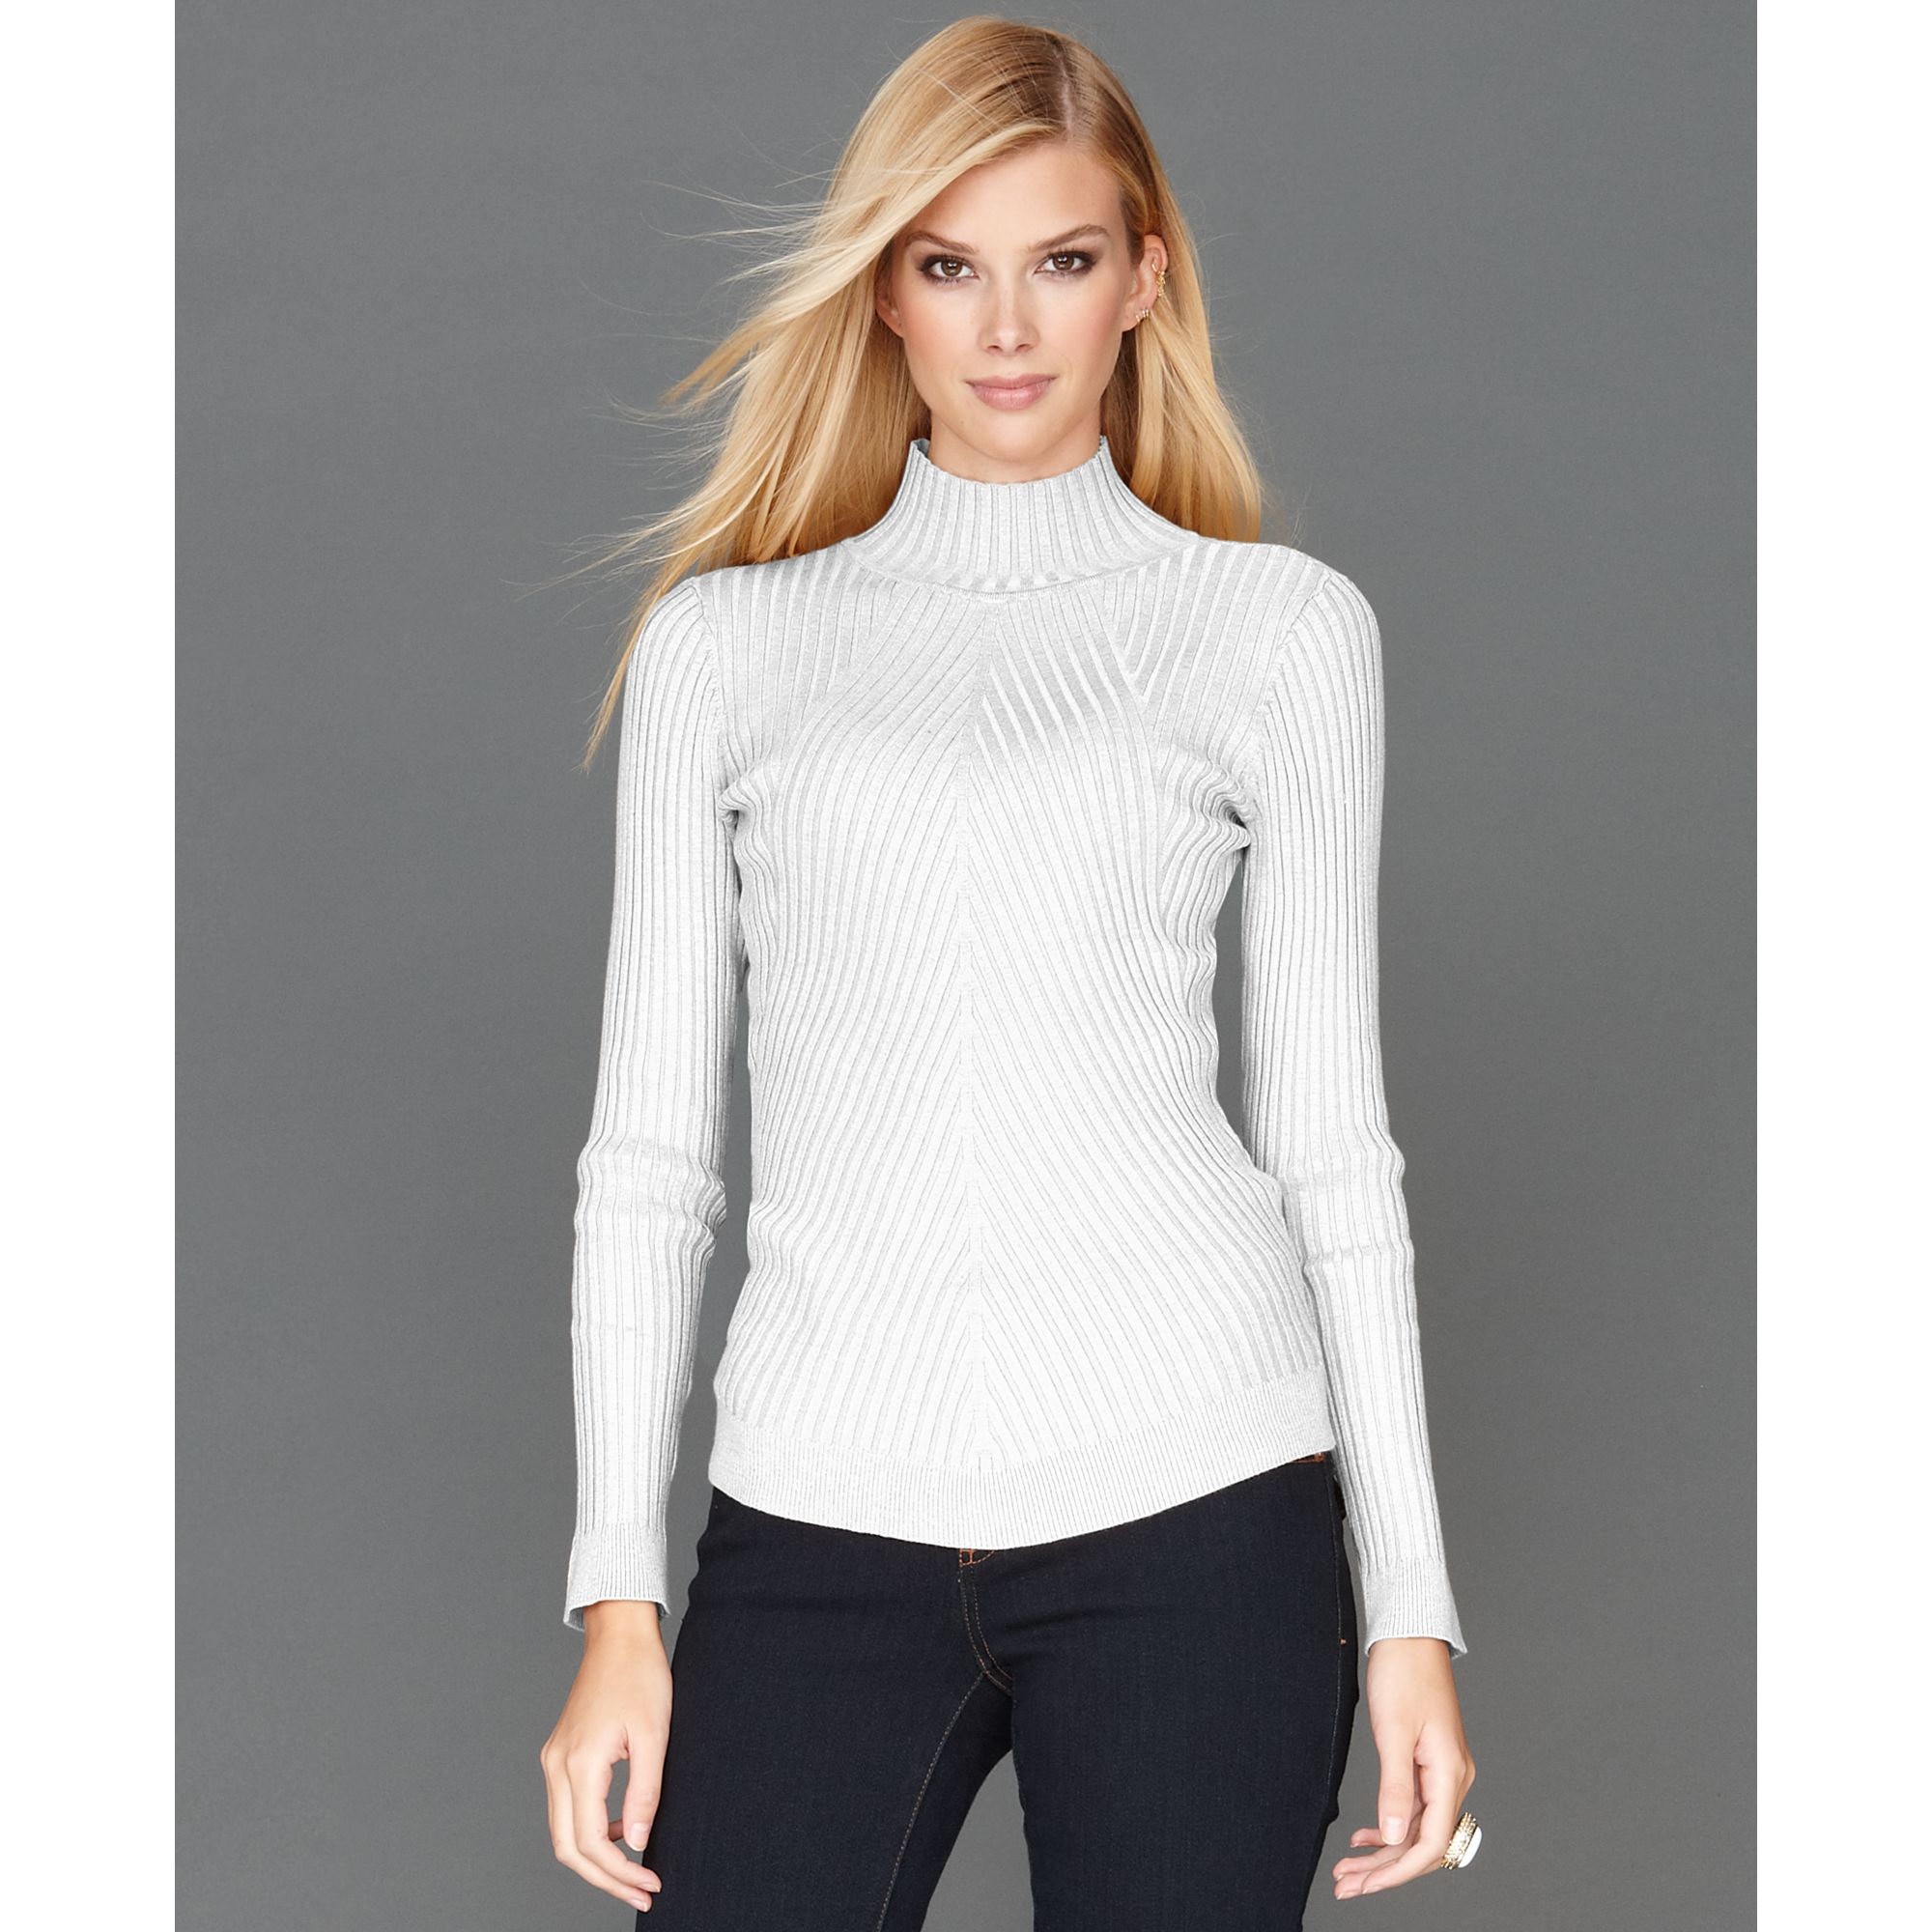 Inc international concepts Longsleeve Mock-turtleneck Ribbed knit ...